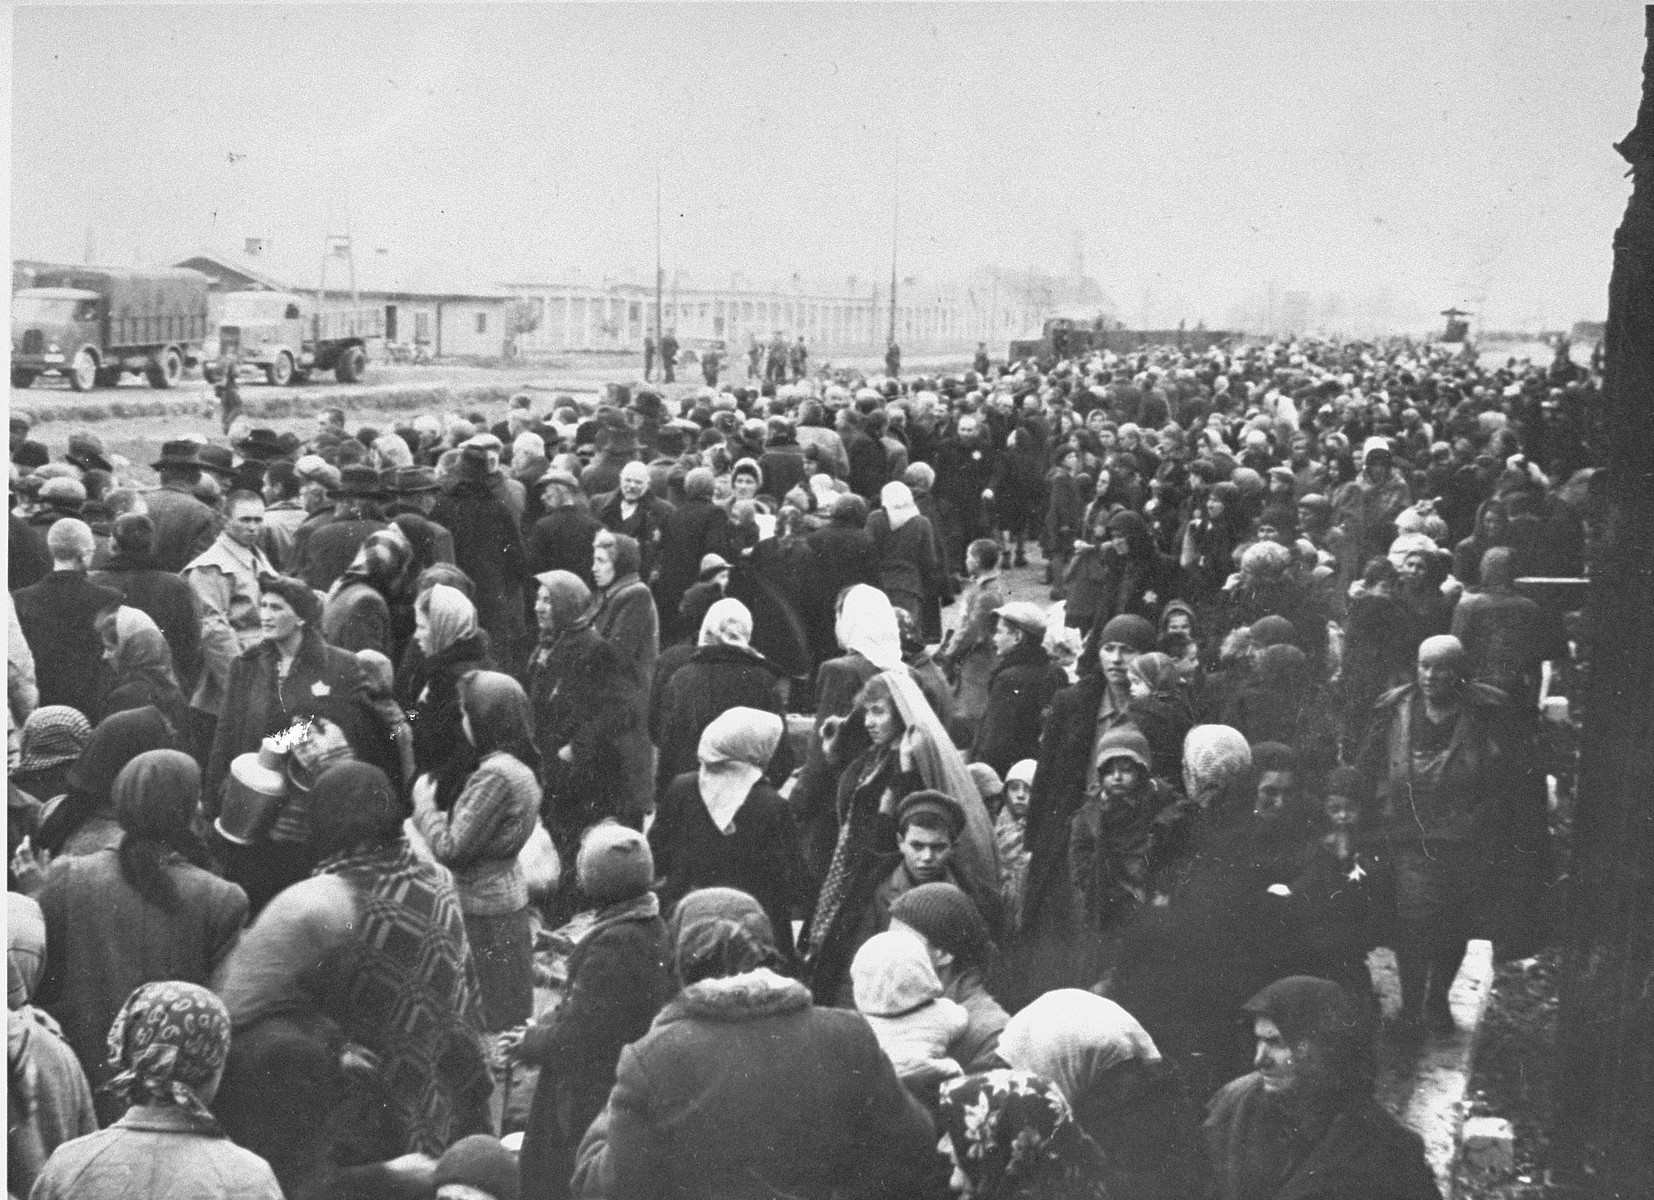 A transport of Jews from Subcarpathian Rus is taken off the trains and assembled on the ramp at Auschwitz-Birkenau.